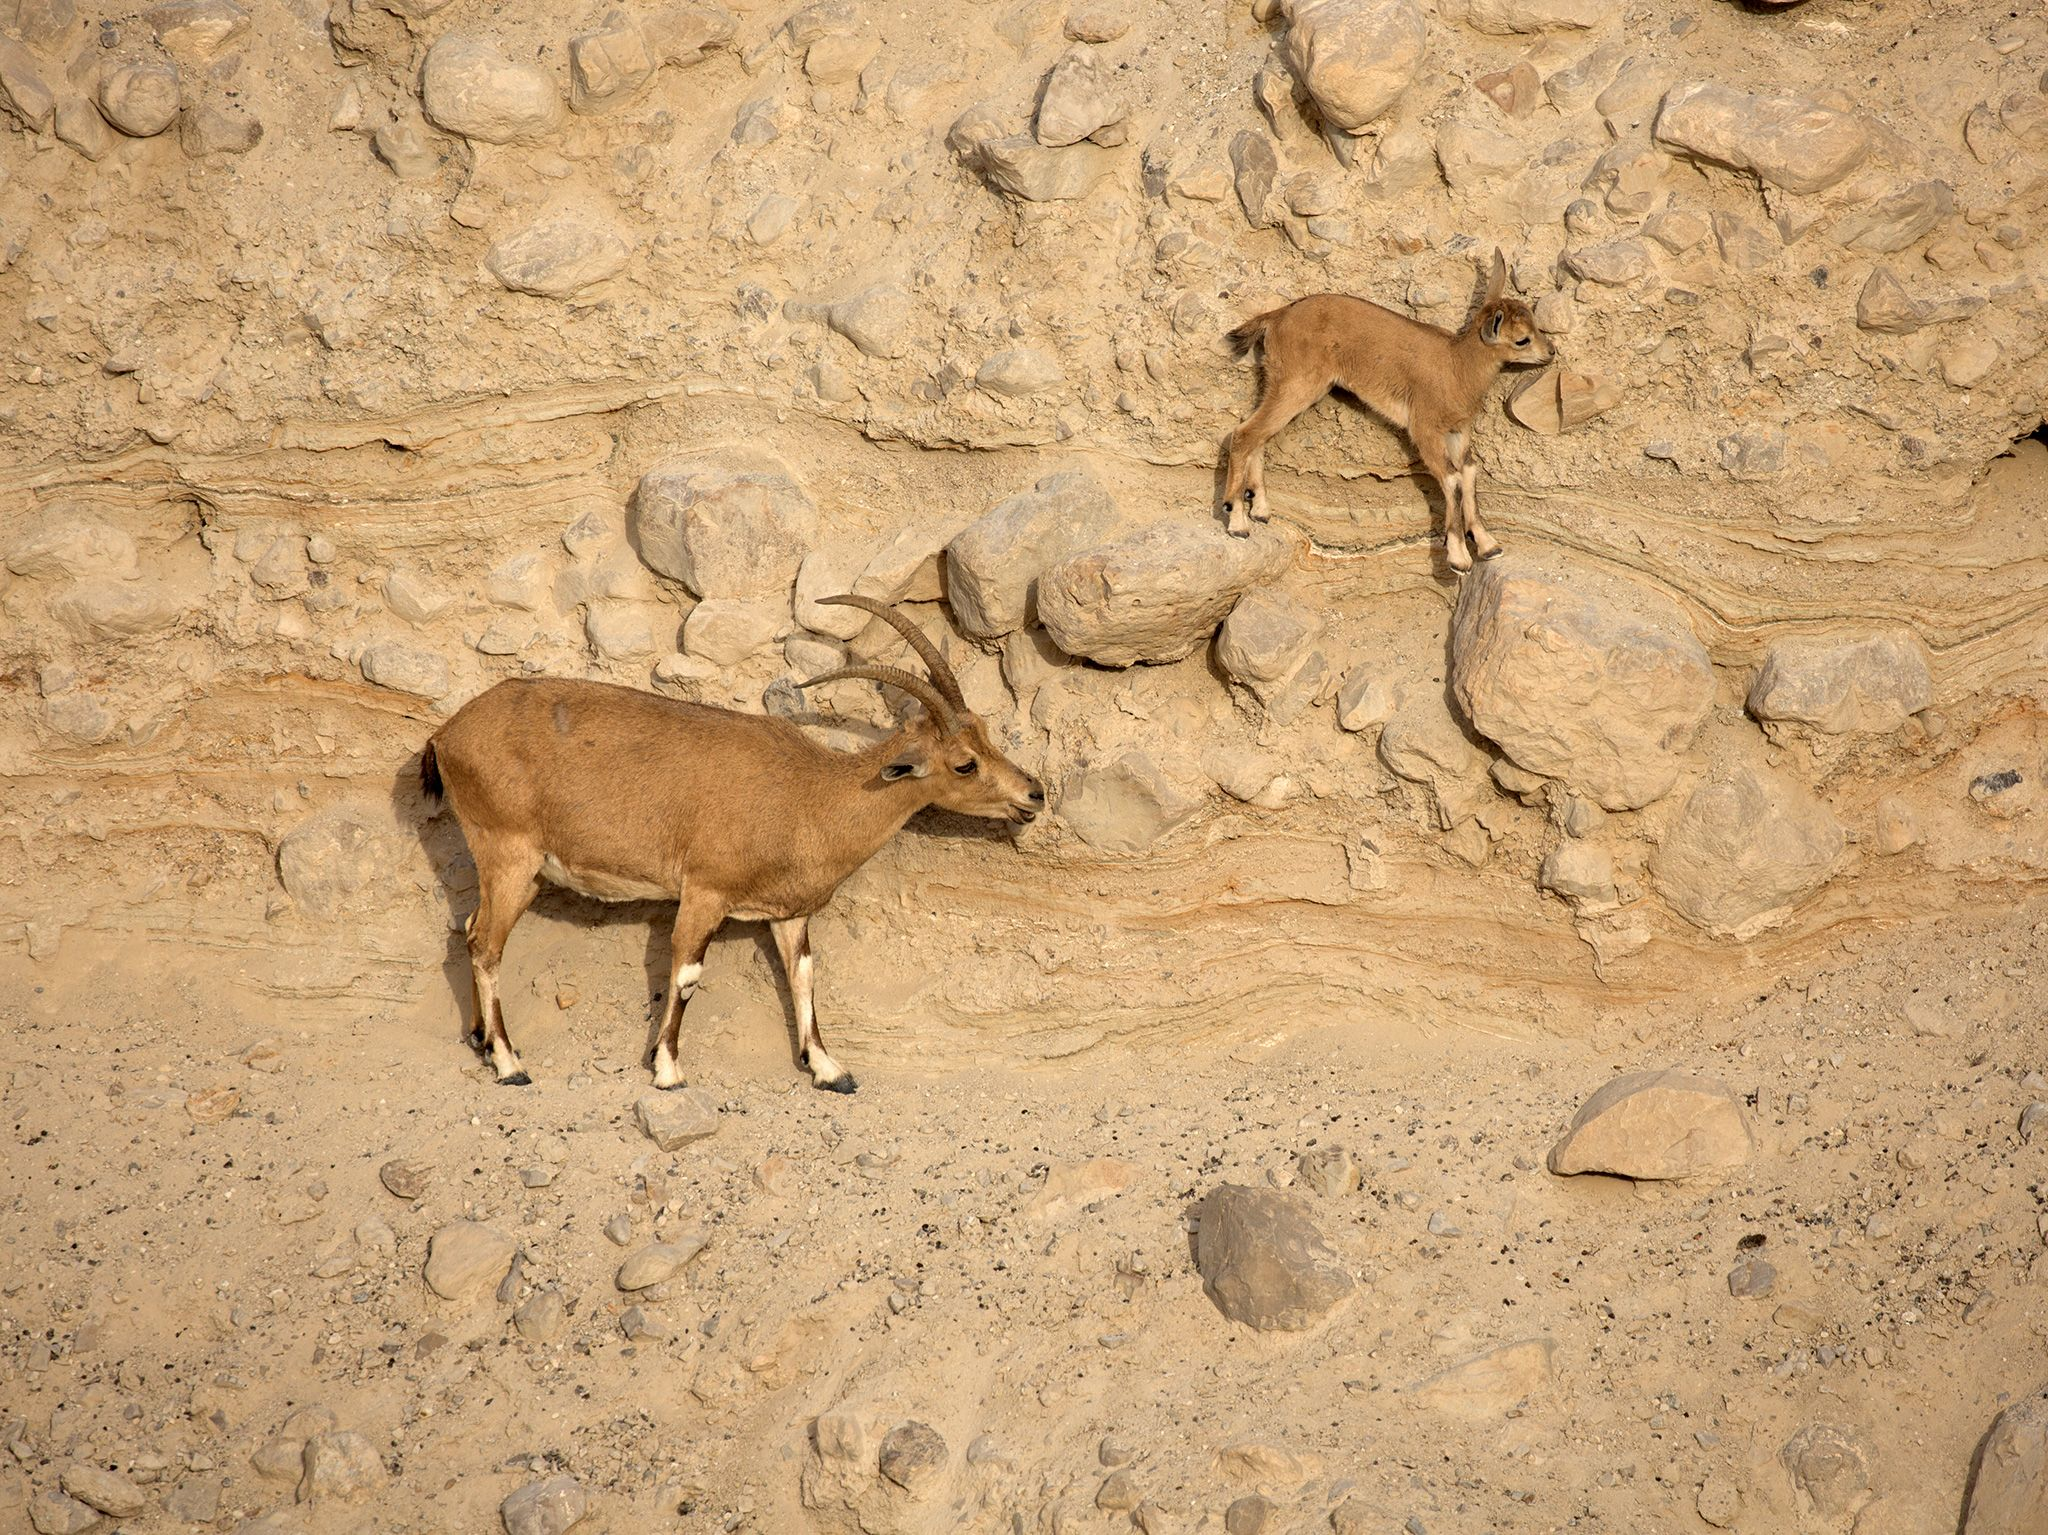 A pair of Nubian ibex (Capra nubiana) scale high cliffs in Israel's Judean Desert. This pair are... [Foto del giorno - aprile 2019]